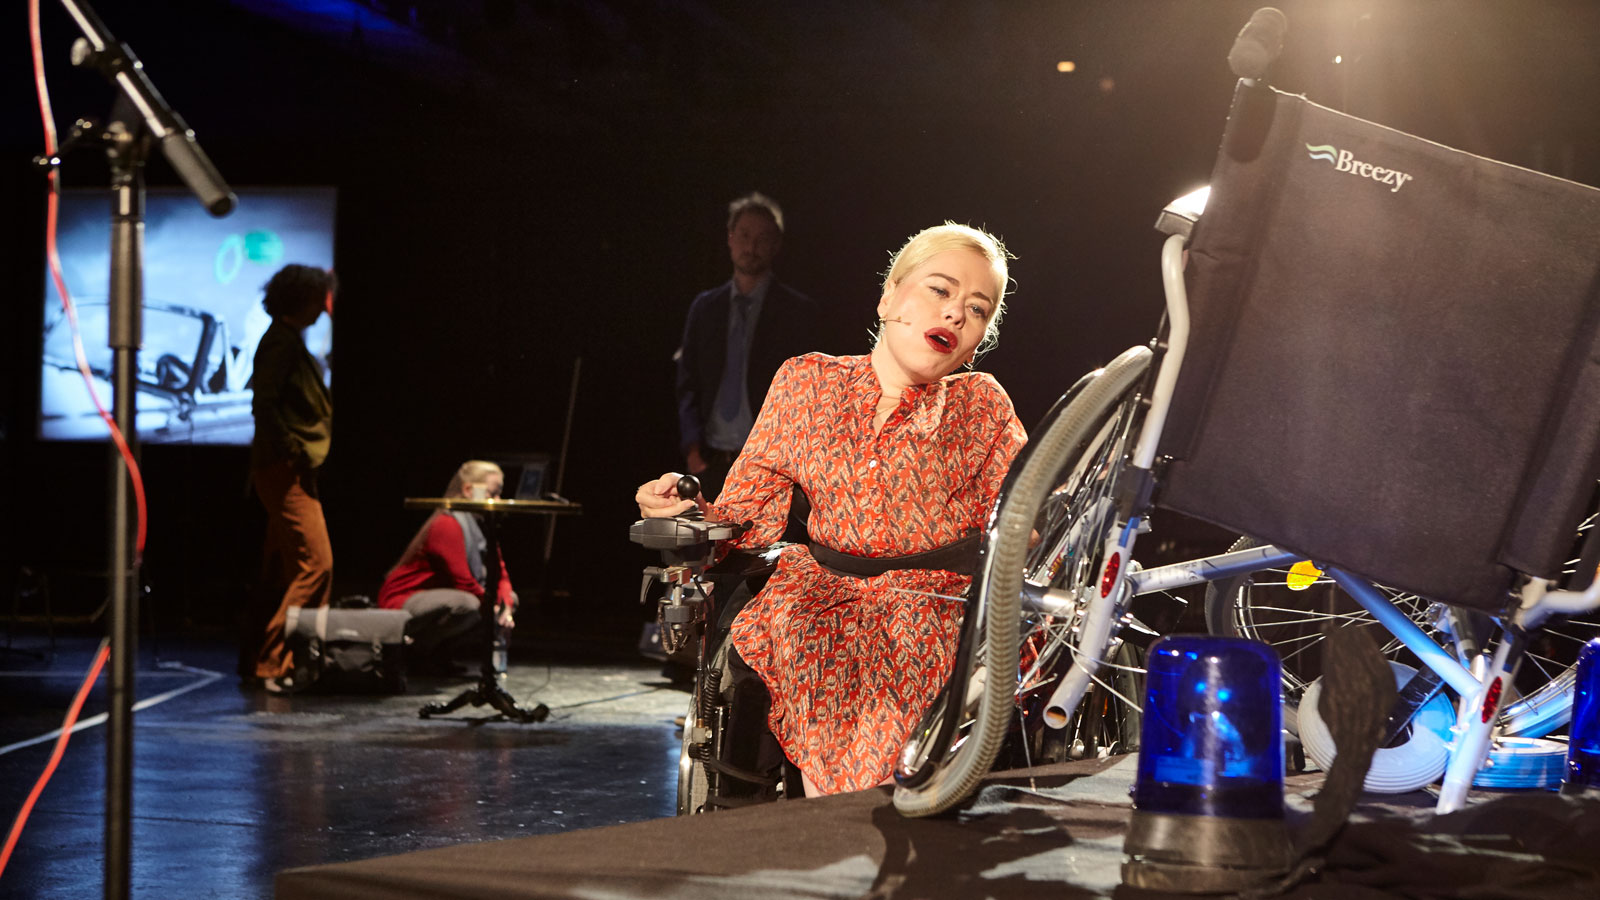 PErformer in a power-assisted wheelchair looks at a broken and mangled manual wheelchair